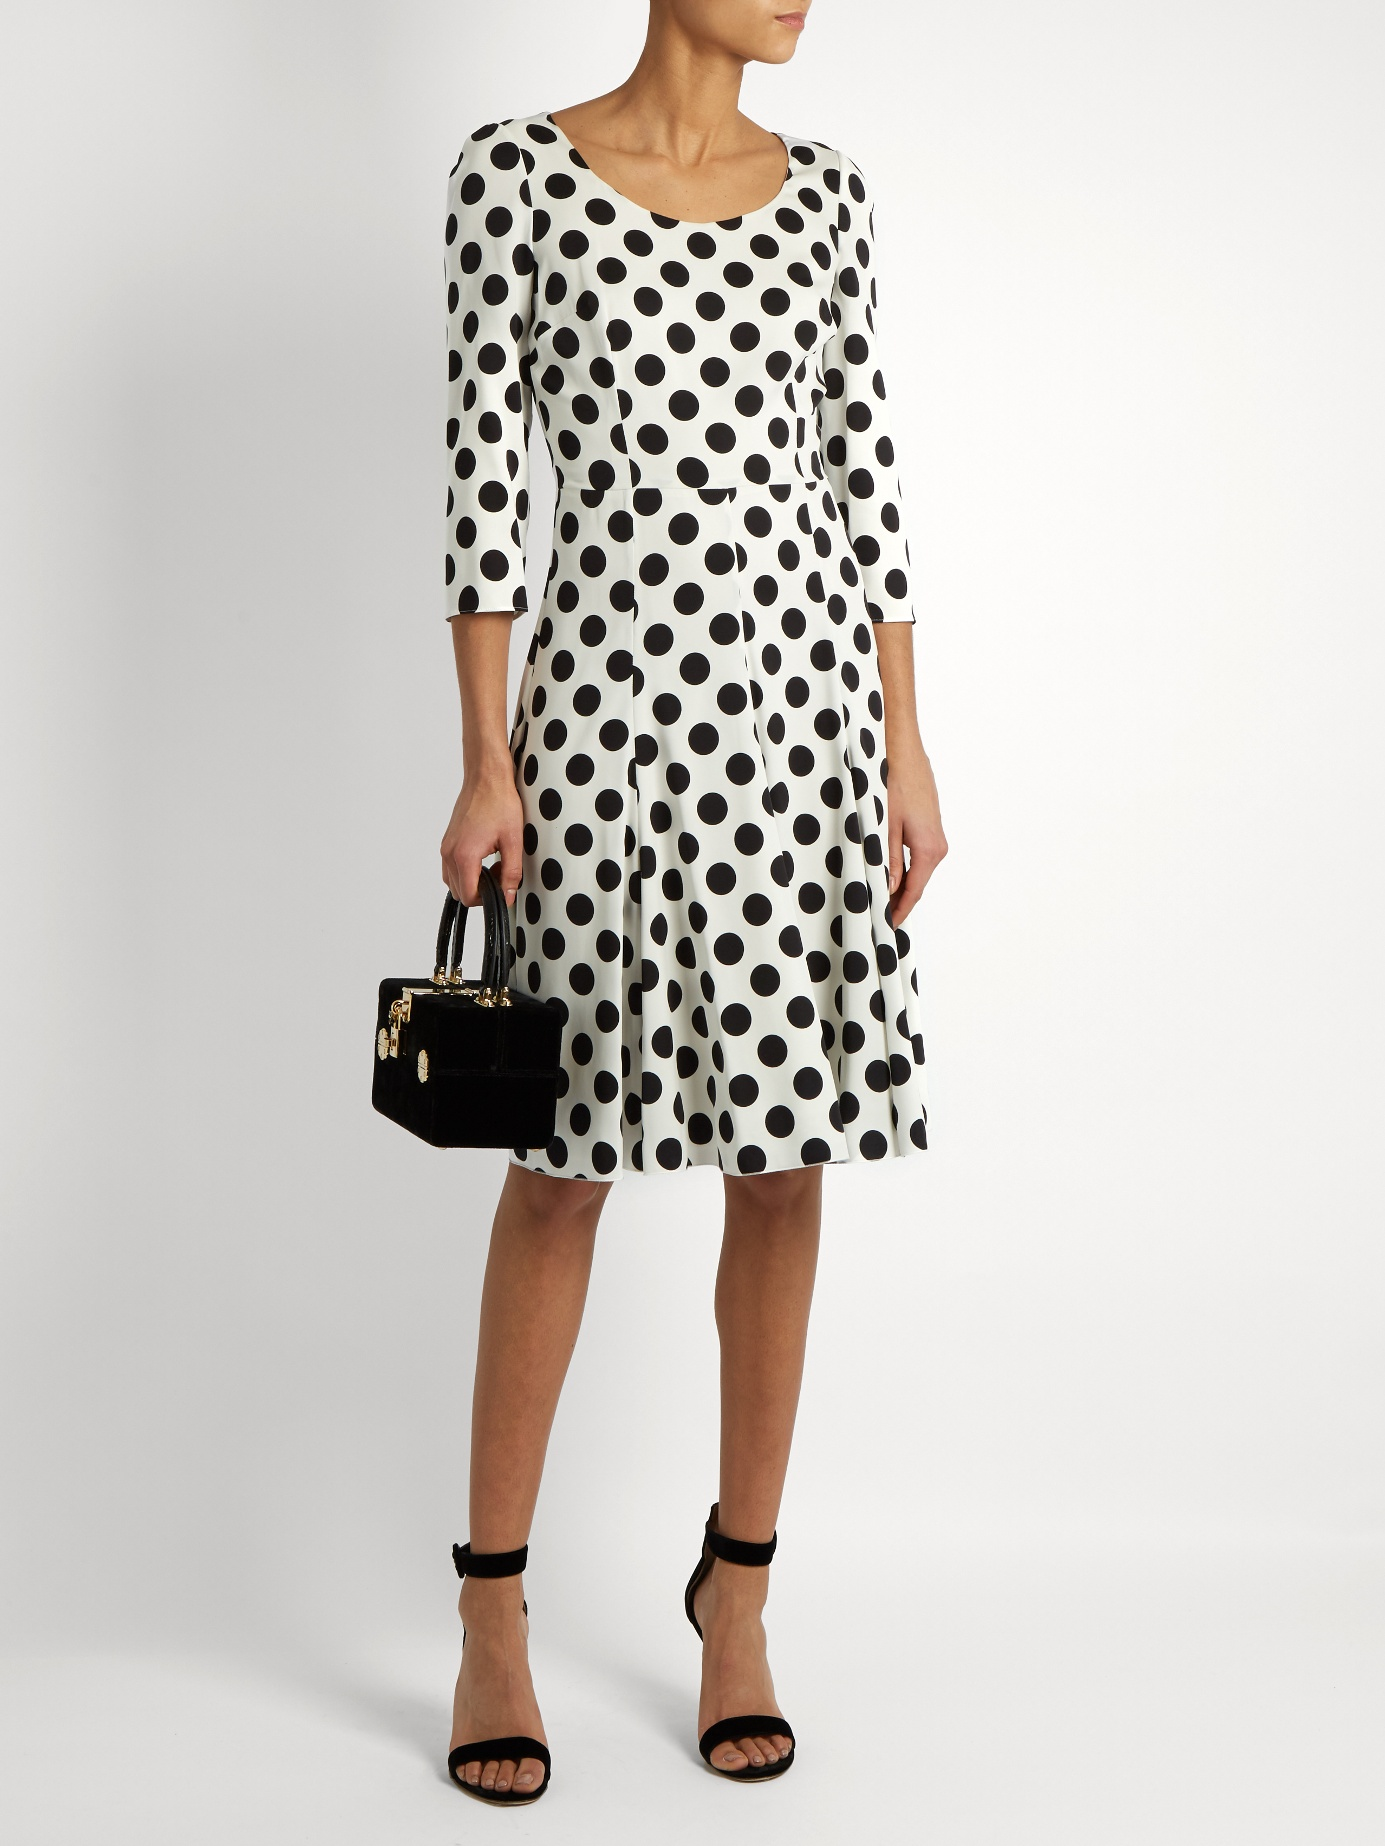 DOLCE & GABBANA POLKA DOT DRESS